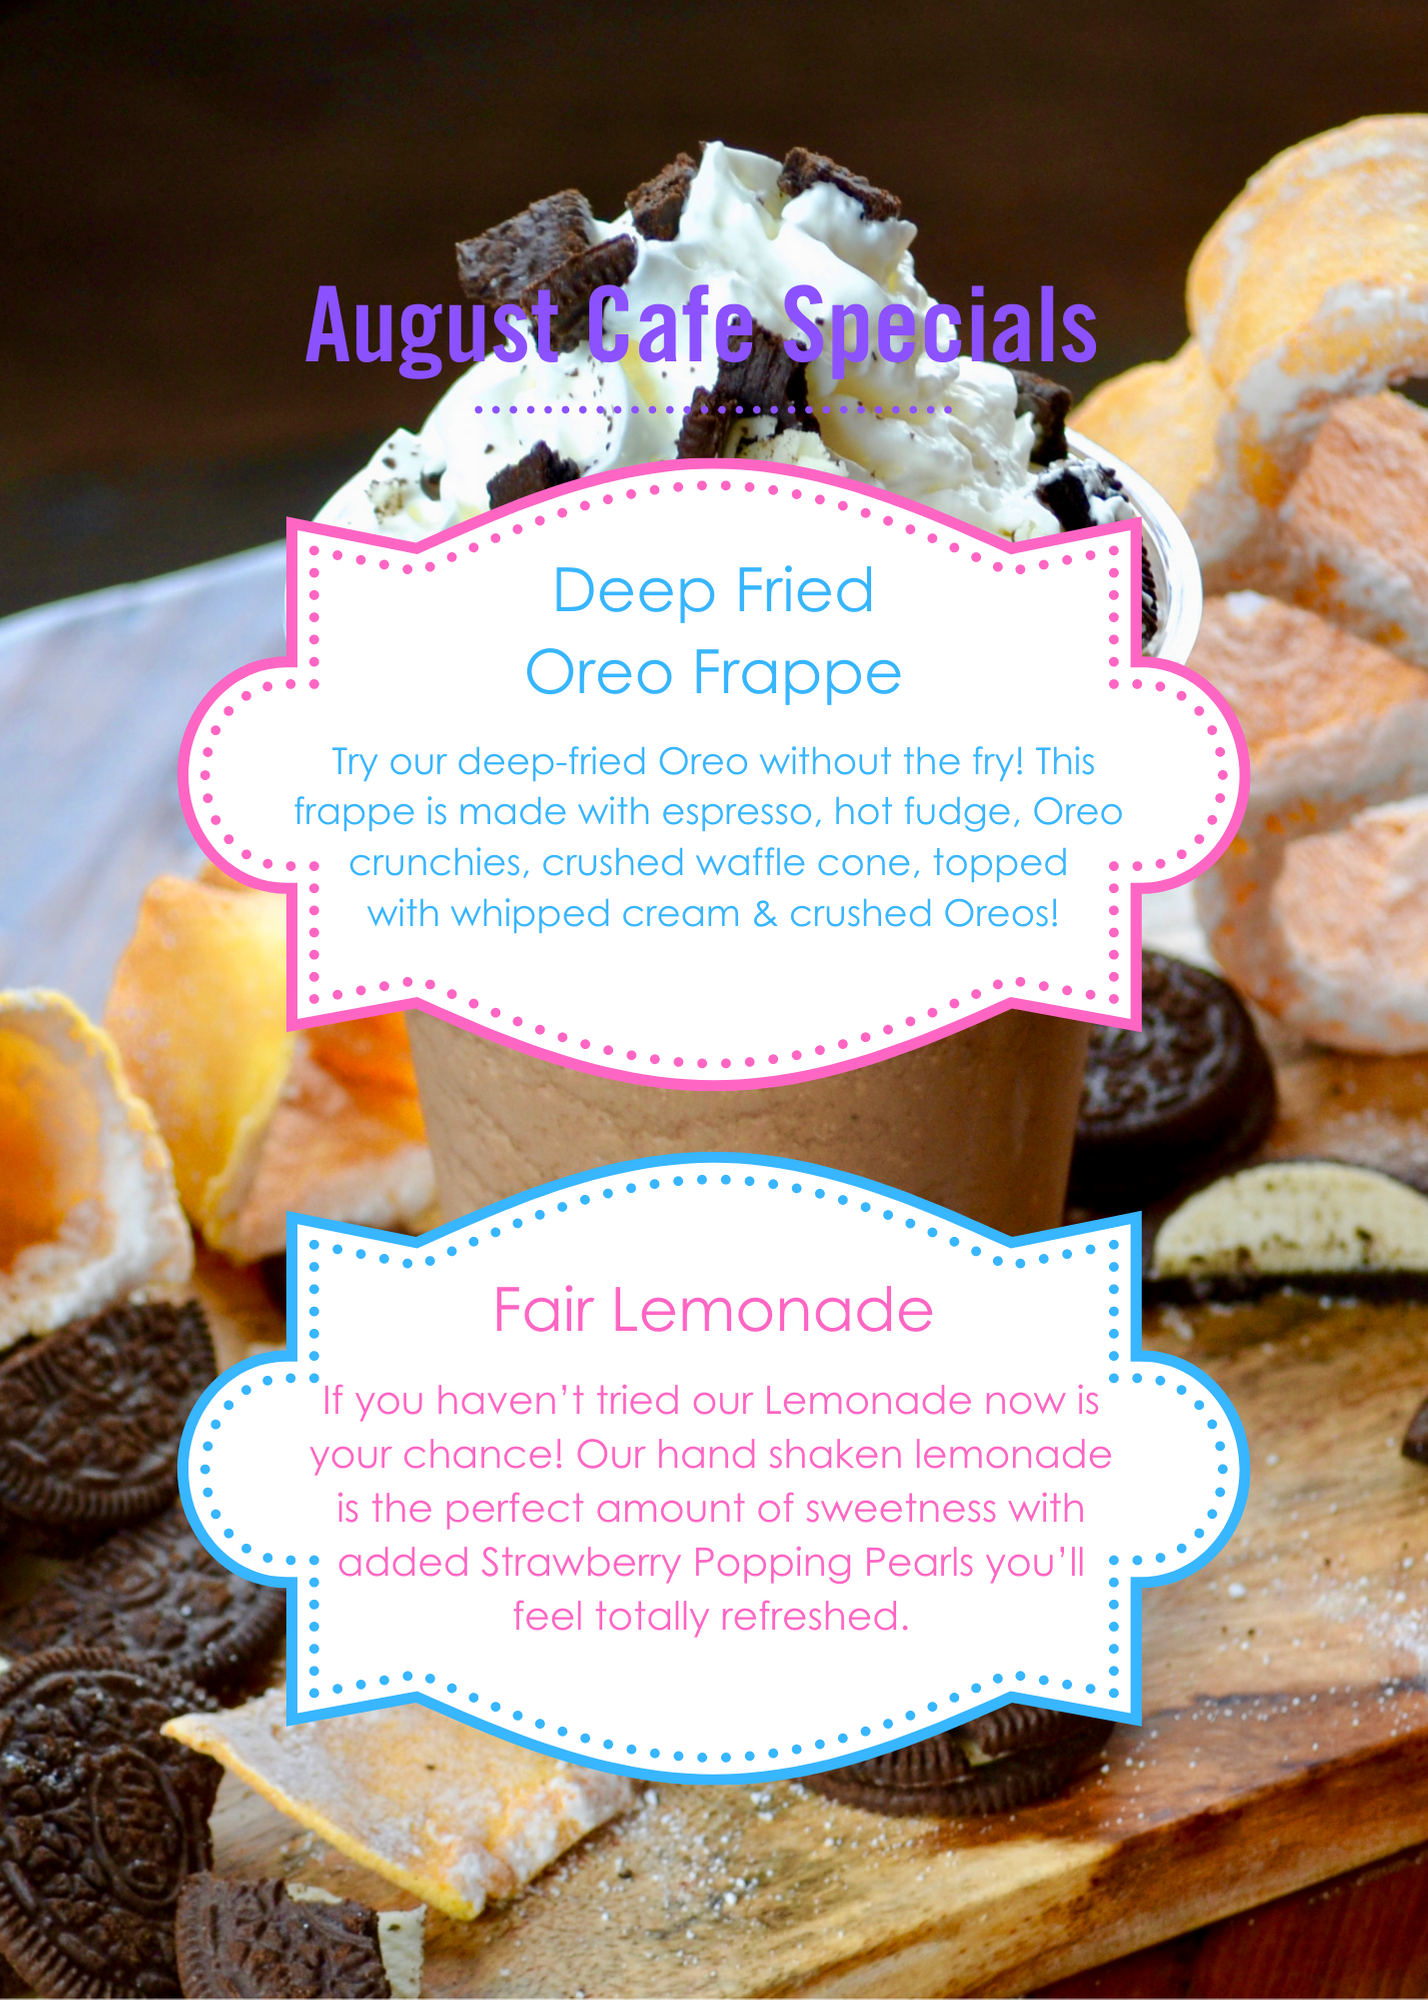 platters-chocolate-factory-cafe-august-drink-specials.png